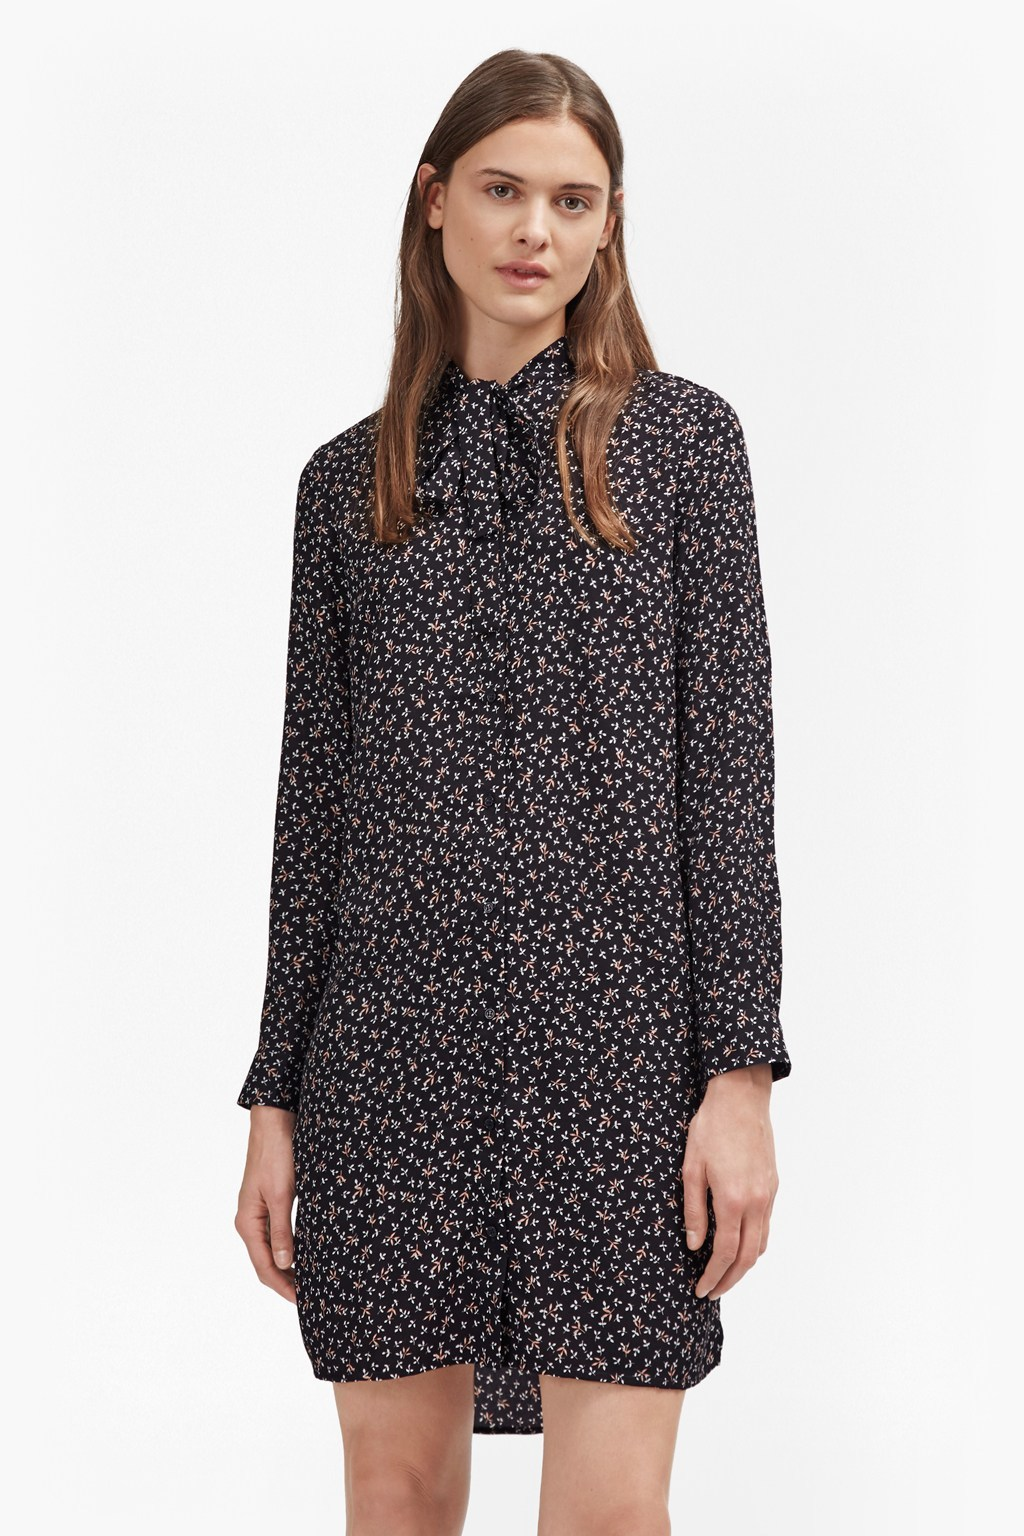 Falaise Fleur Print Shirt Dress Utility Blue - style: shirt; length: mid thigh; neckline: pussy bow; predominant colour: navy; secondary colour: stone; occasions: casual, creative work; fit: straight cut; fibres: polyester/polyamide - 100%; sleeve length: long sleeve; sleeve style: standard; pattern type: fabric; pattern: patterned/print; texture group: woven light midweight; season: a/w 2016; wardrobe: highlight